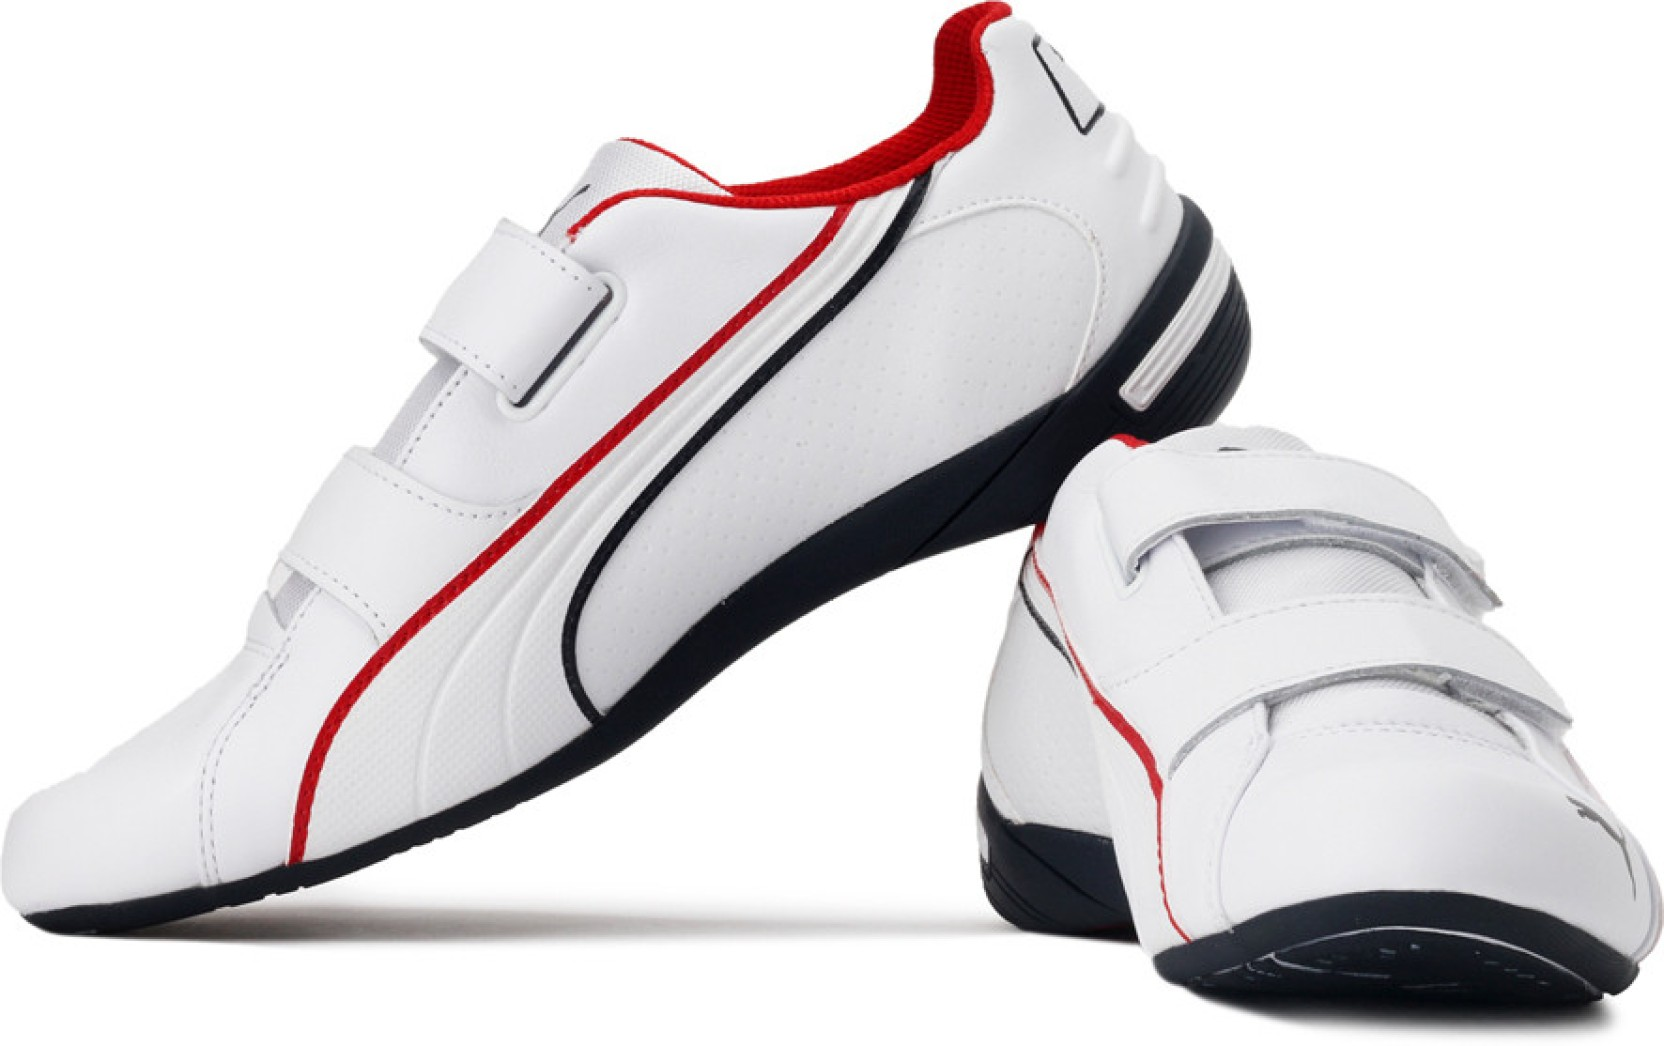 Puma Shoes: Shop for Puma Shoes For Men online at best prices in India. Choose from a wide range of Puma Shoes at fihideqavicah.gq Get Free 1 or 2 day delivery with Amazon Prime, EMI offers, Cash on Delivery on eligible purchases.